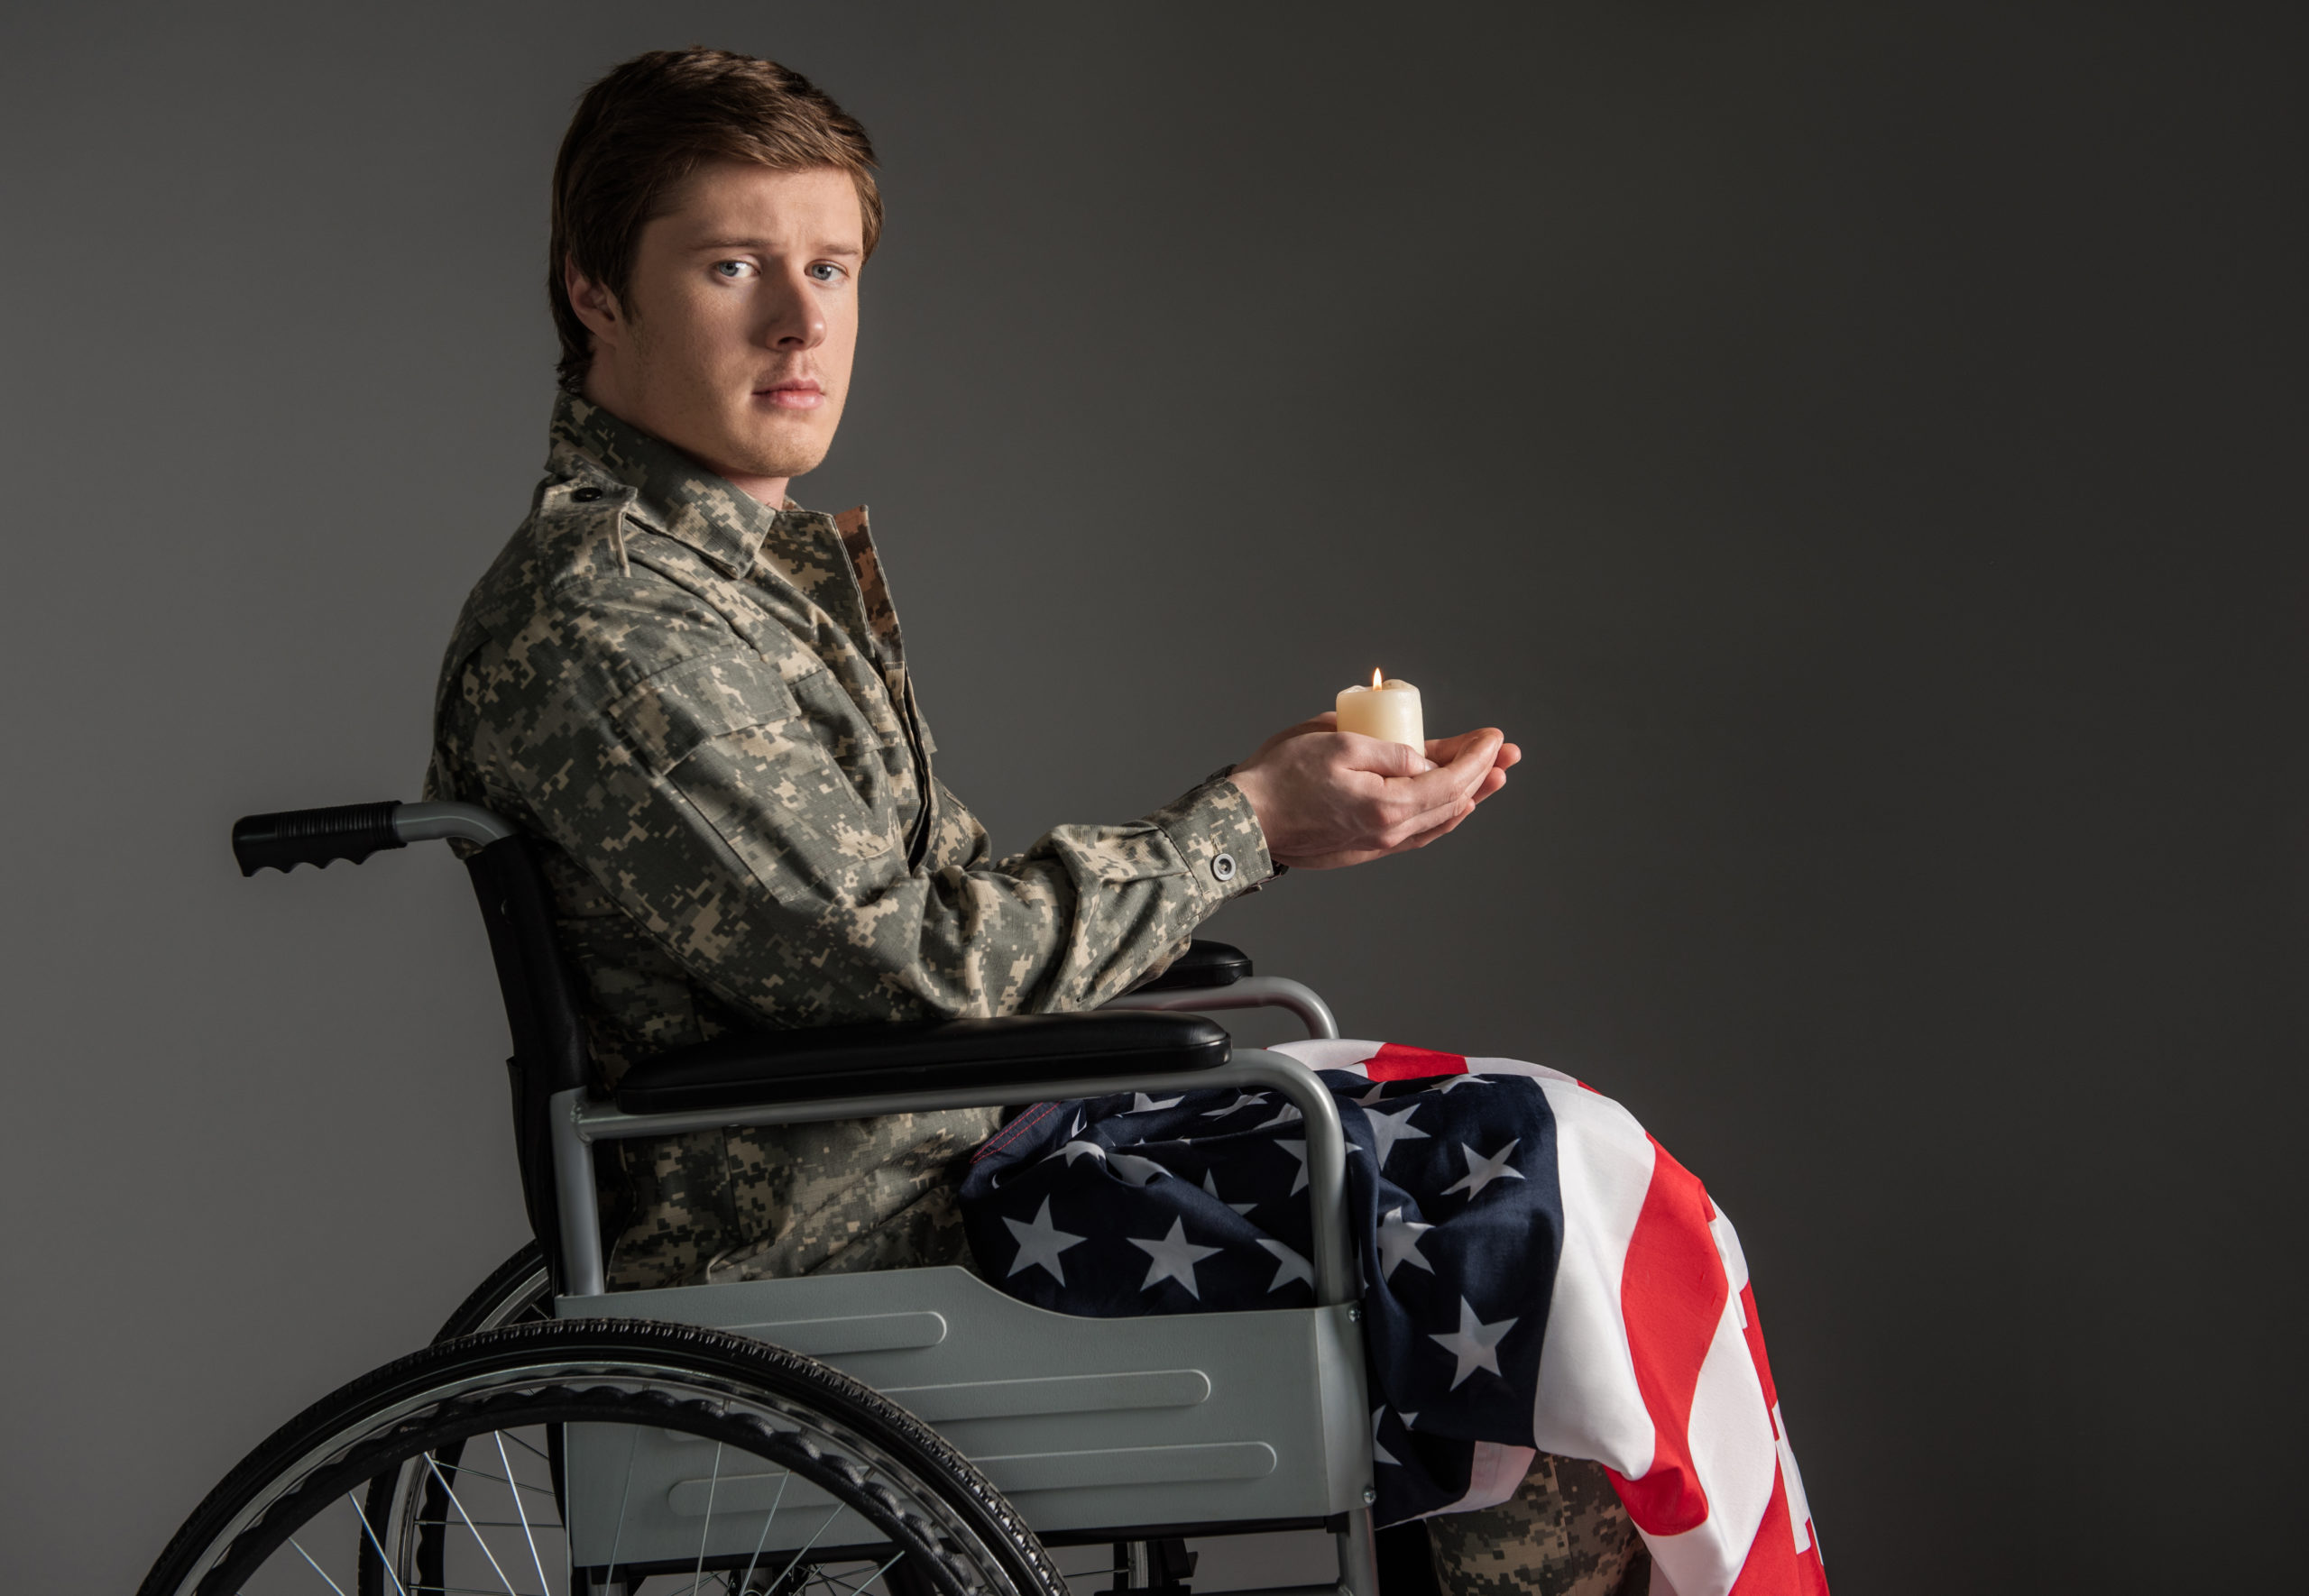 VA disability attorney concept. Unhappy paralyzed military man feeling helpless